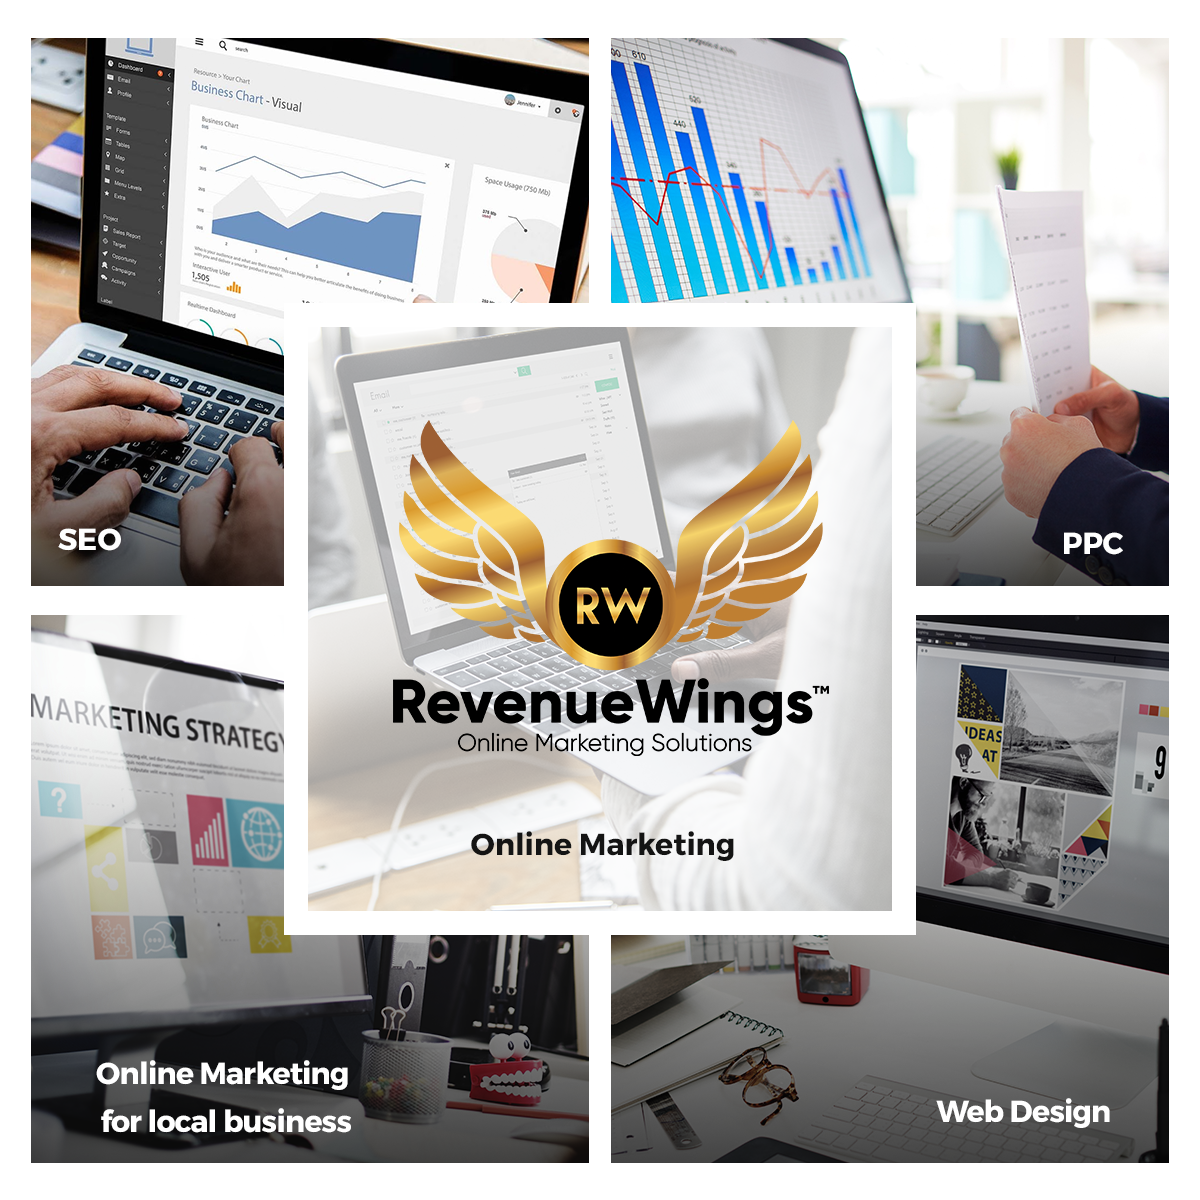 RevenueWings CEO Shares the Story Behind the Rebrand of Canadian Online Marketing Agency